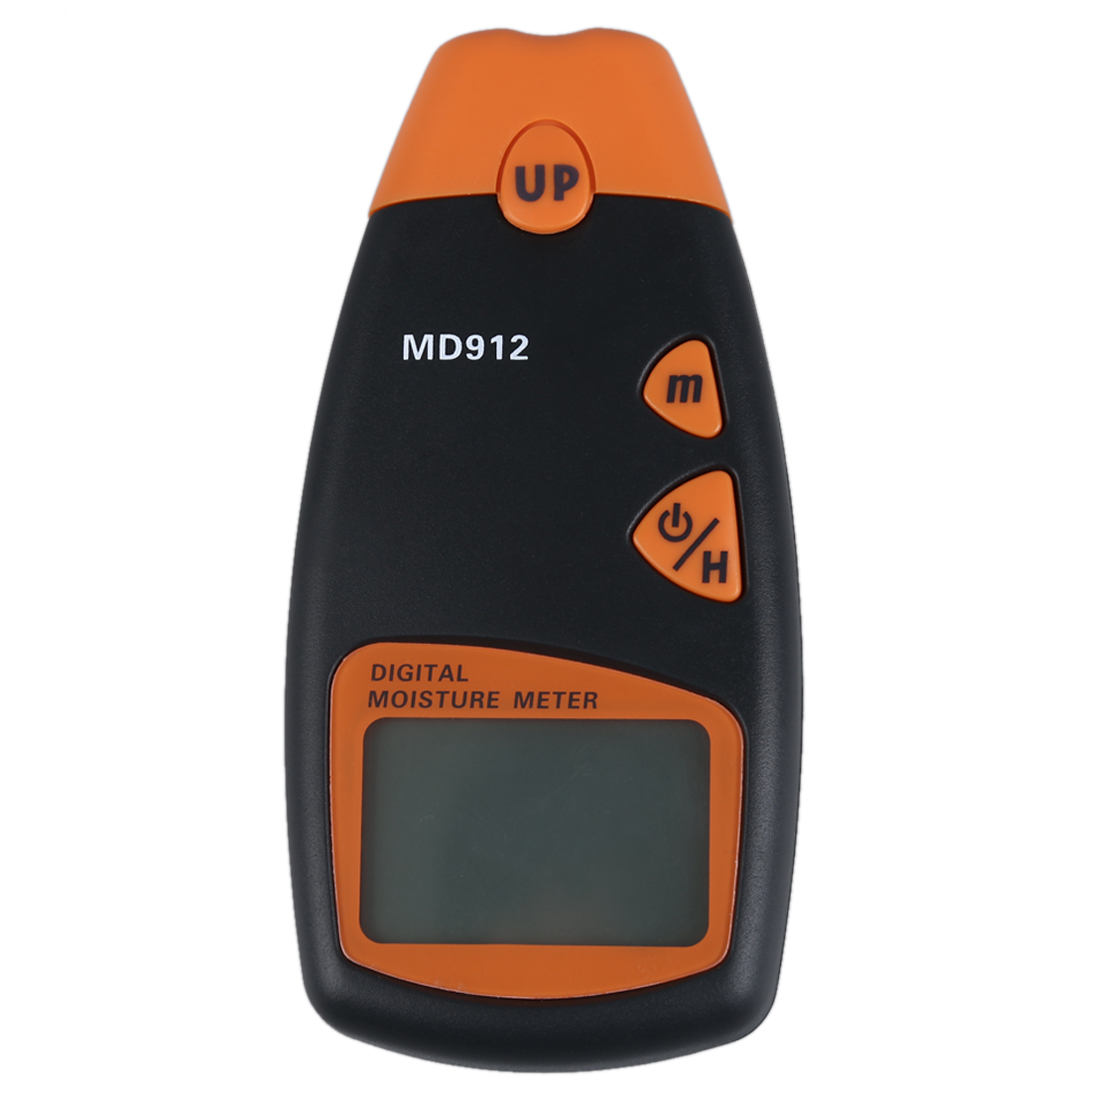 MD912 Tools Digital Moisture Meter For Wood Sheetrock Carpets 2-Pin Sensor (Range 2% - 70% RH; Accuracy 0.5%) [randomtext category=